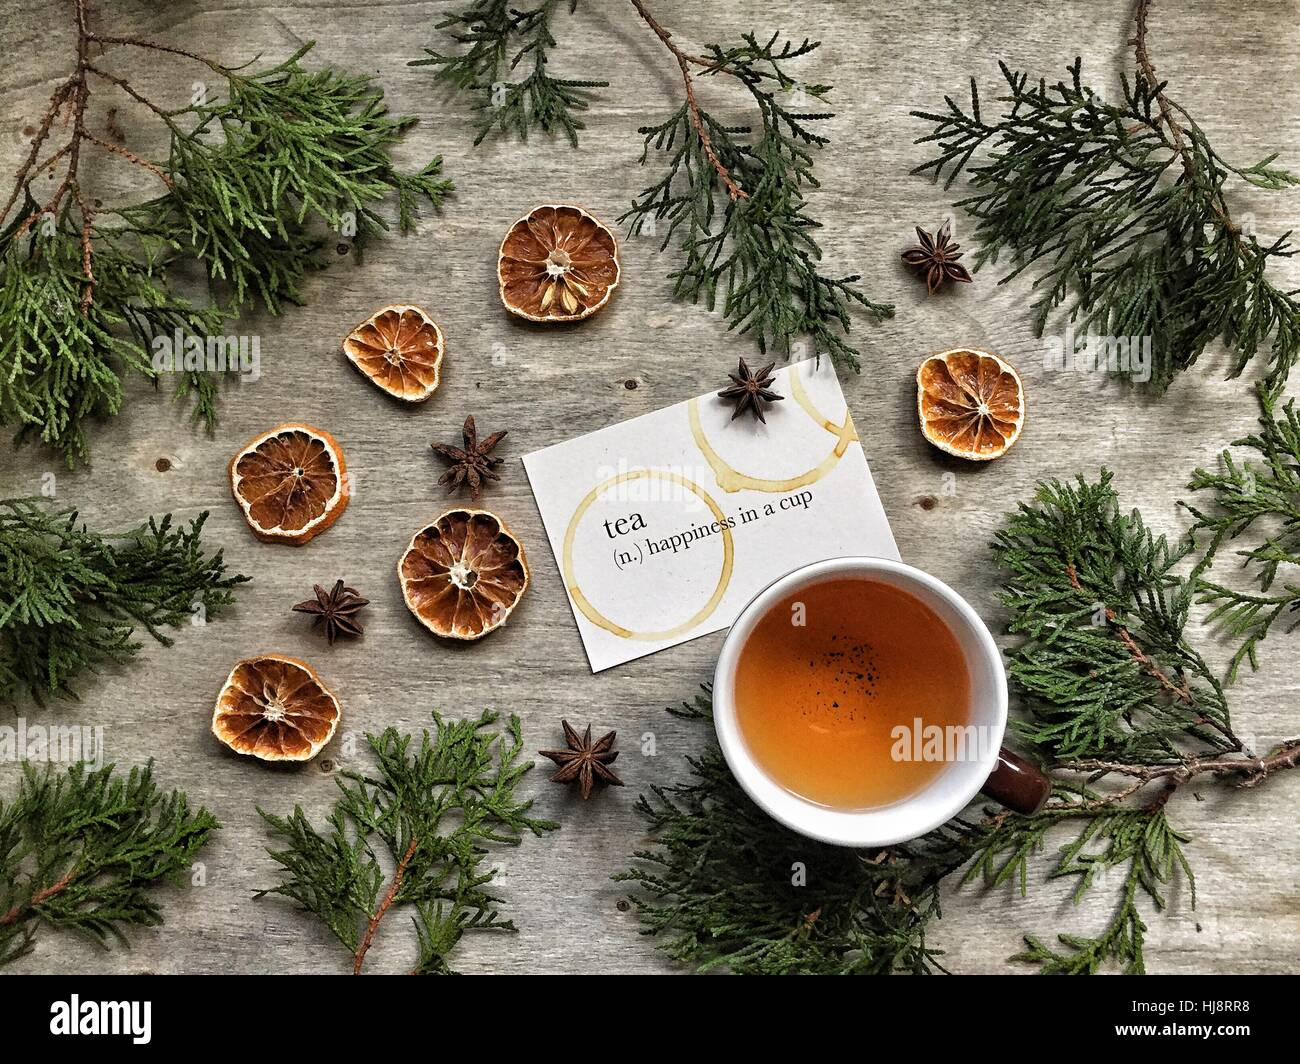 Tea with fir tree branches and dried oranges - Stock Image